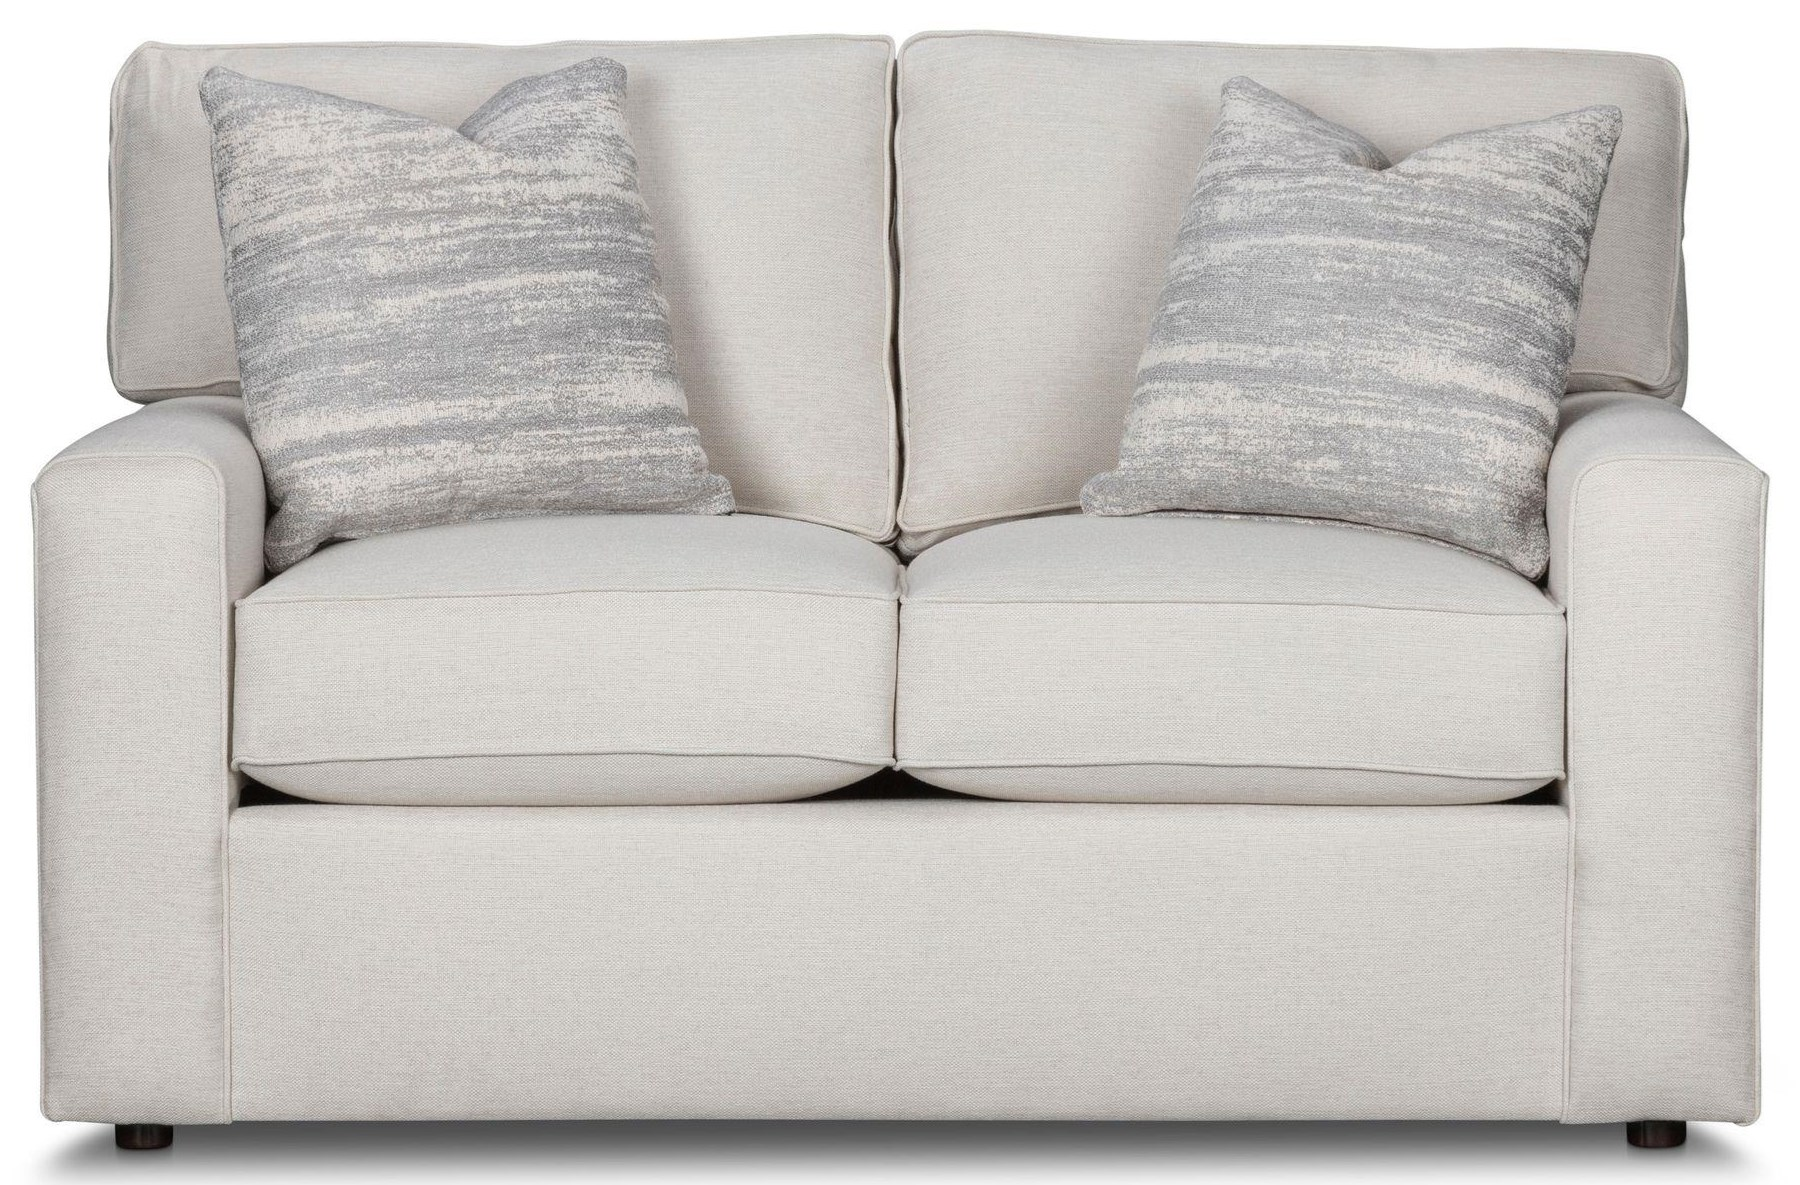 Leigh Upholstered Loveseat by Stone & Leigh Furniture at Baer's Furniture